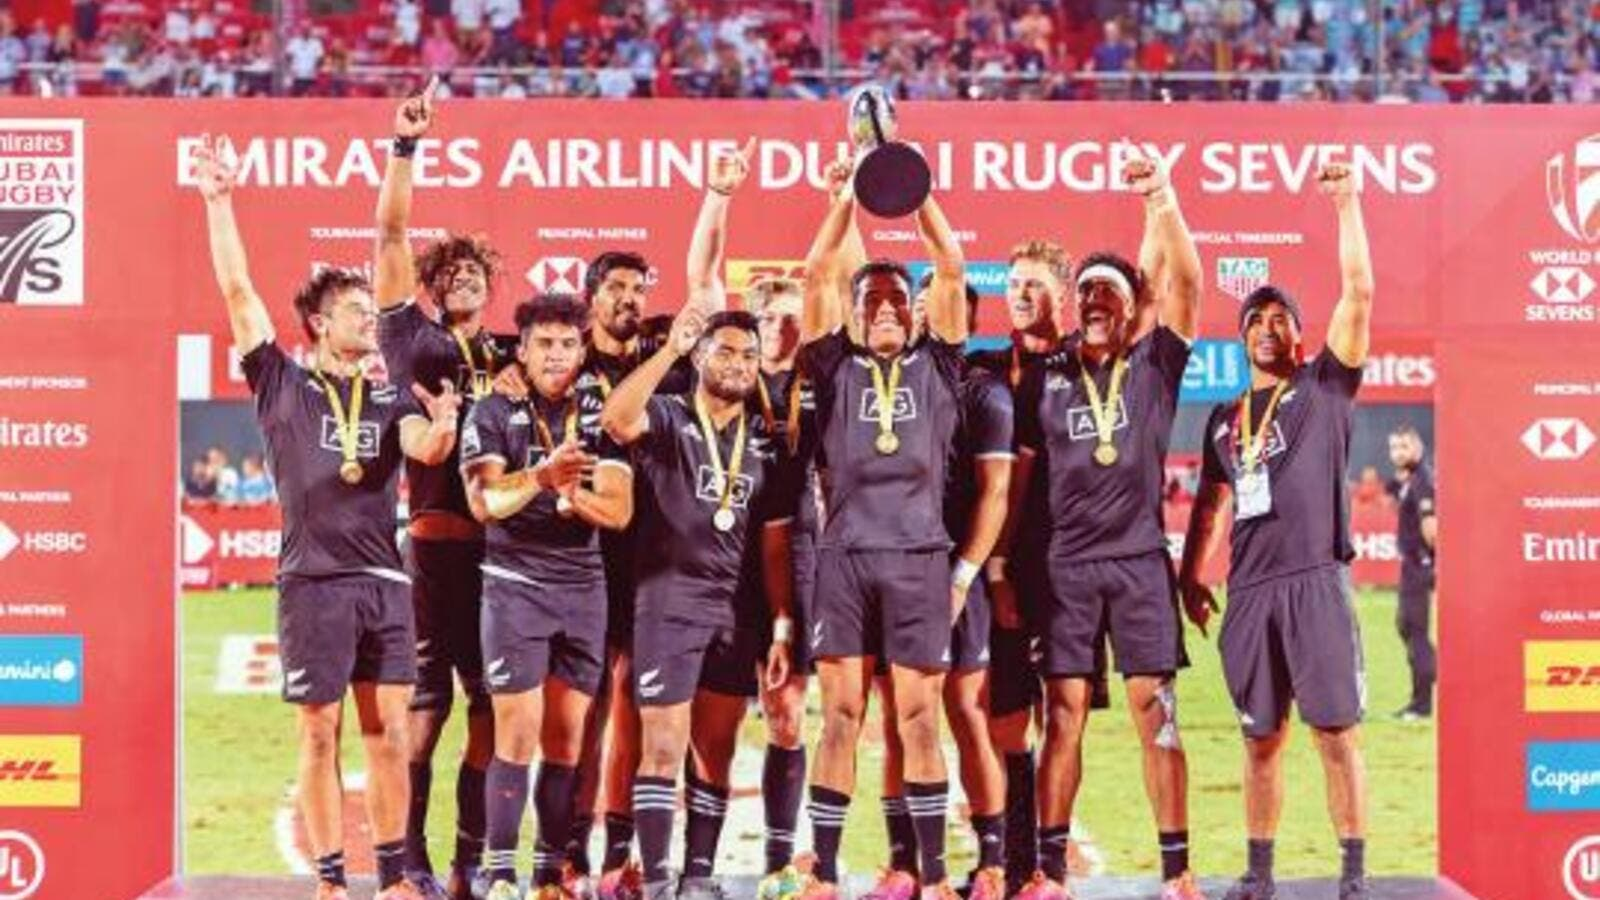 New Zealand team celebrate after clinching the Dubai Rugby Sevens title at The Sevens Stadium in Dubai. (Photo: Antonin Kélian Kallouche/Gulf News)